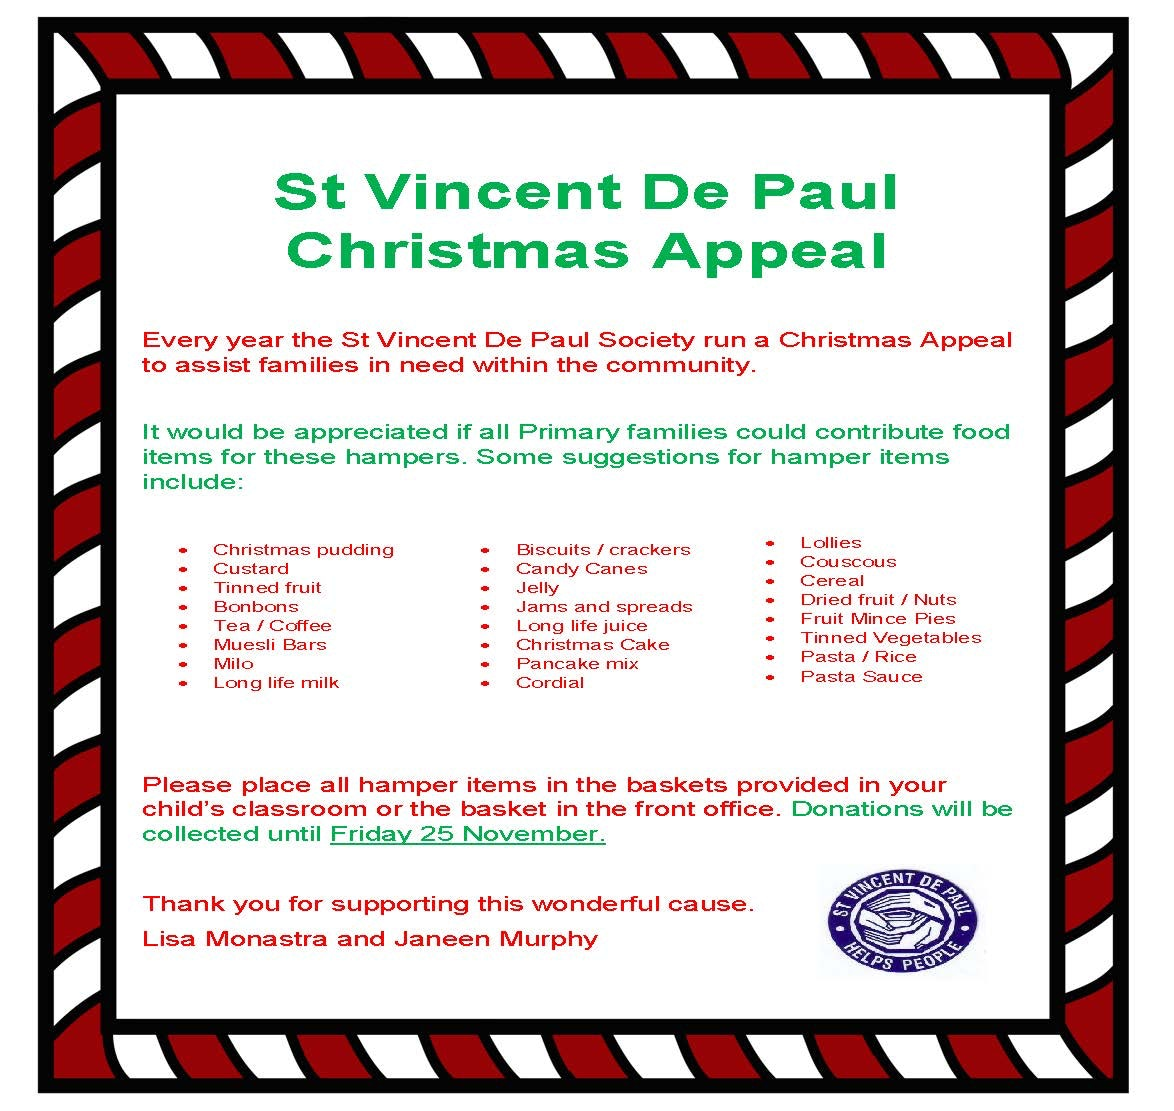 st-vincent-de-paul-christmas-appeal-flyer-01.jpg